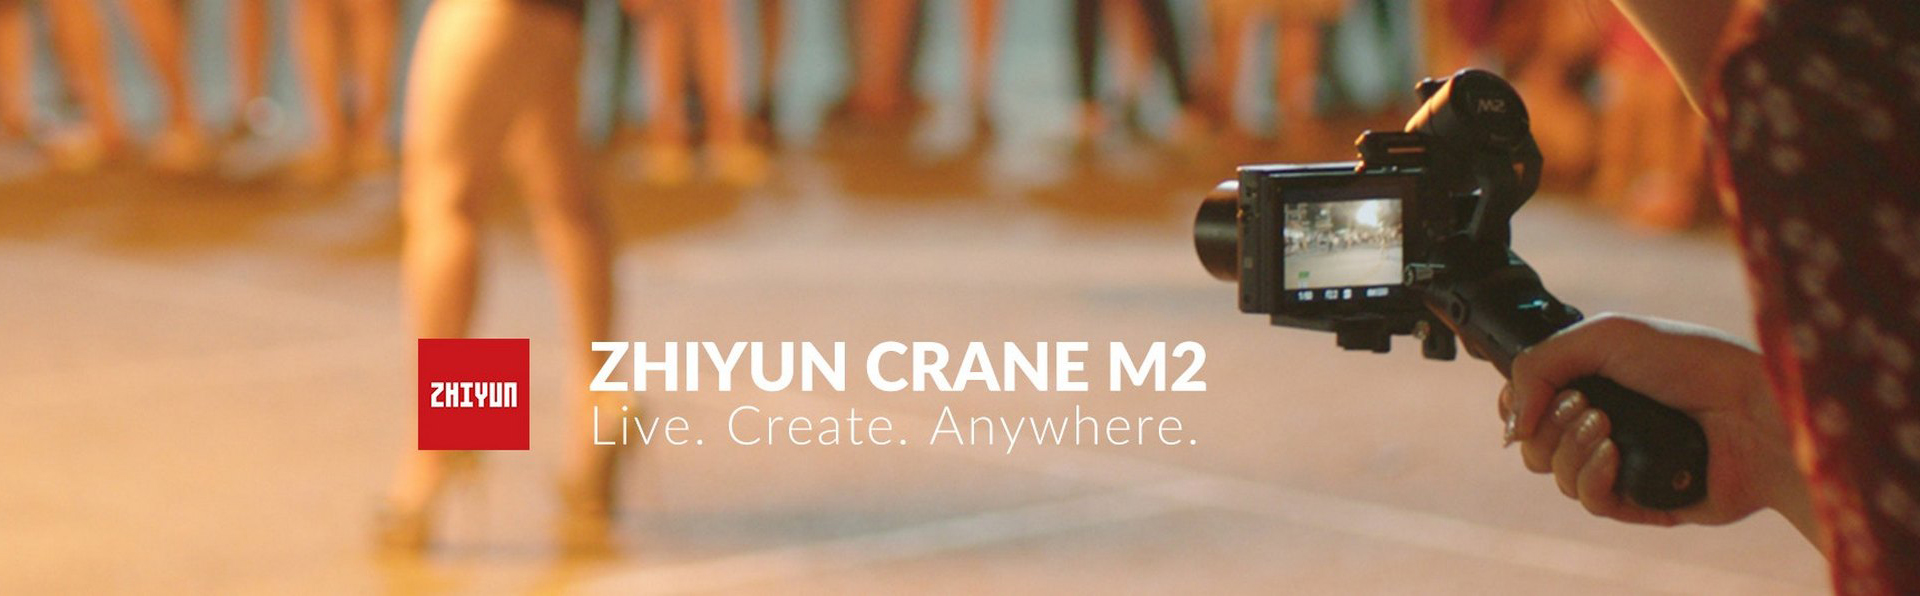 Zhiyun Tech CRANE M2 All in One stabilizátor na mobil, foťák i GoPro